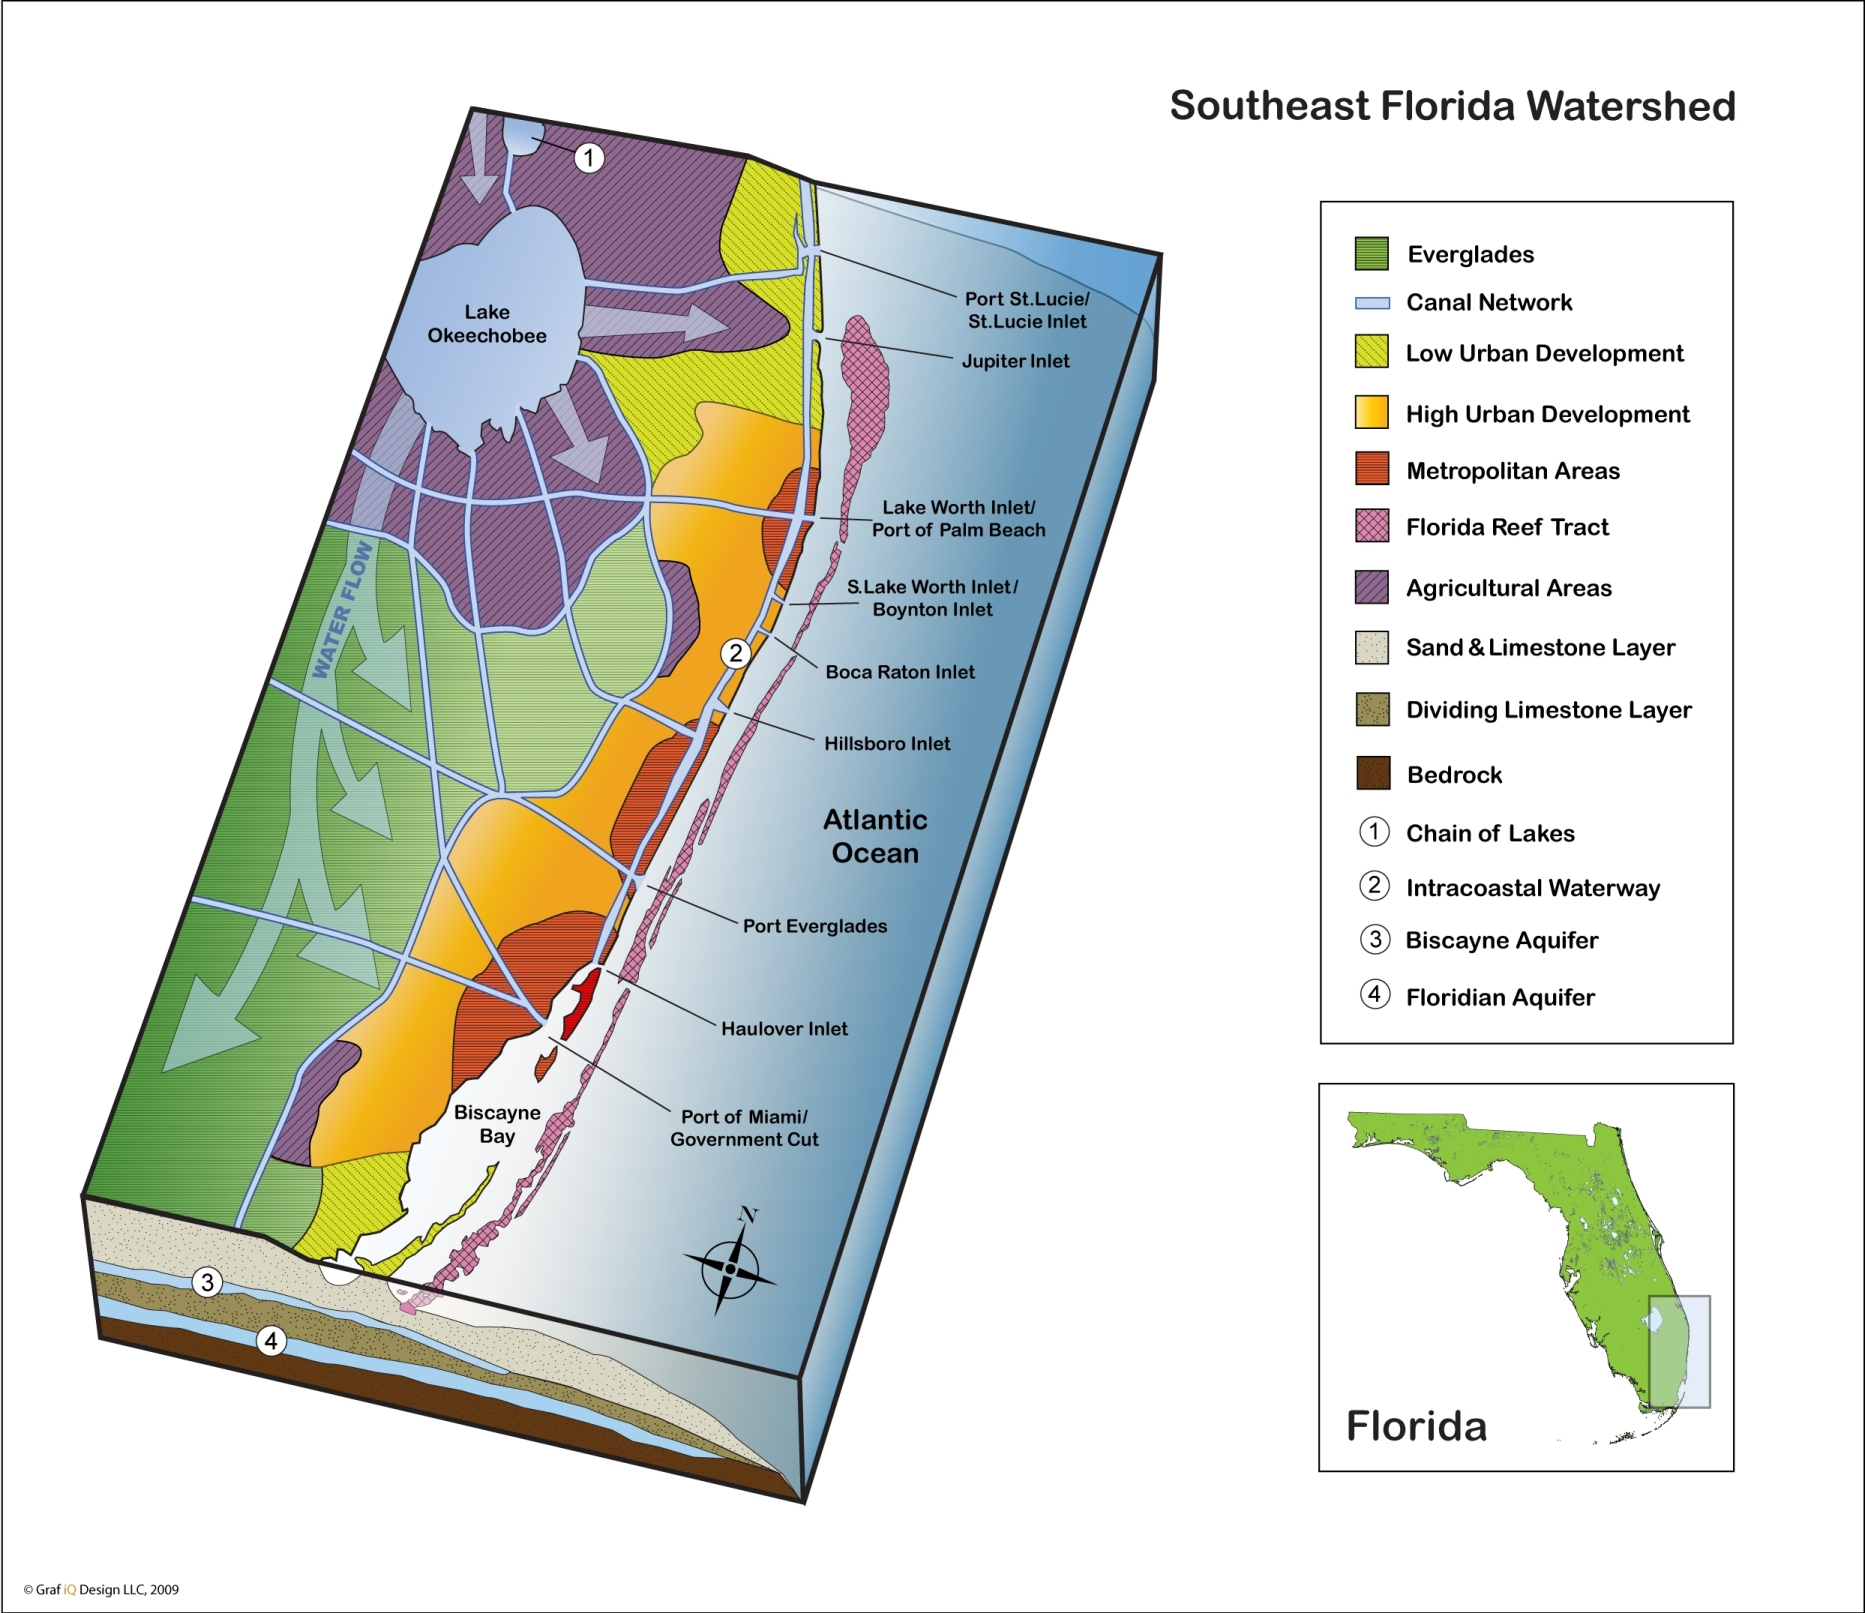 Southeast Florida watershed illustration for educational poster.